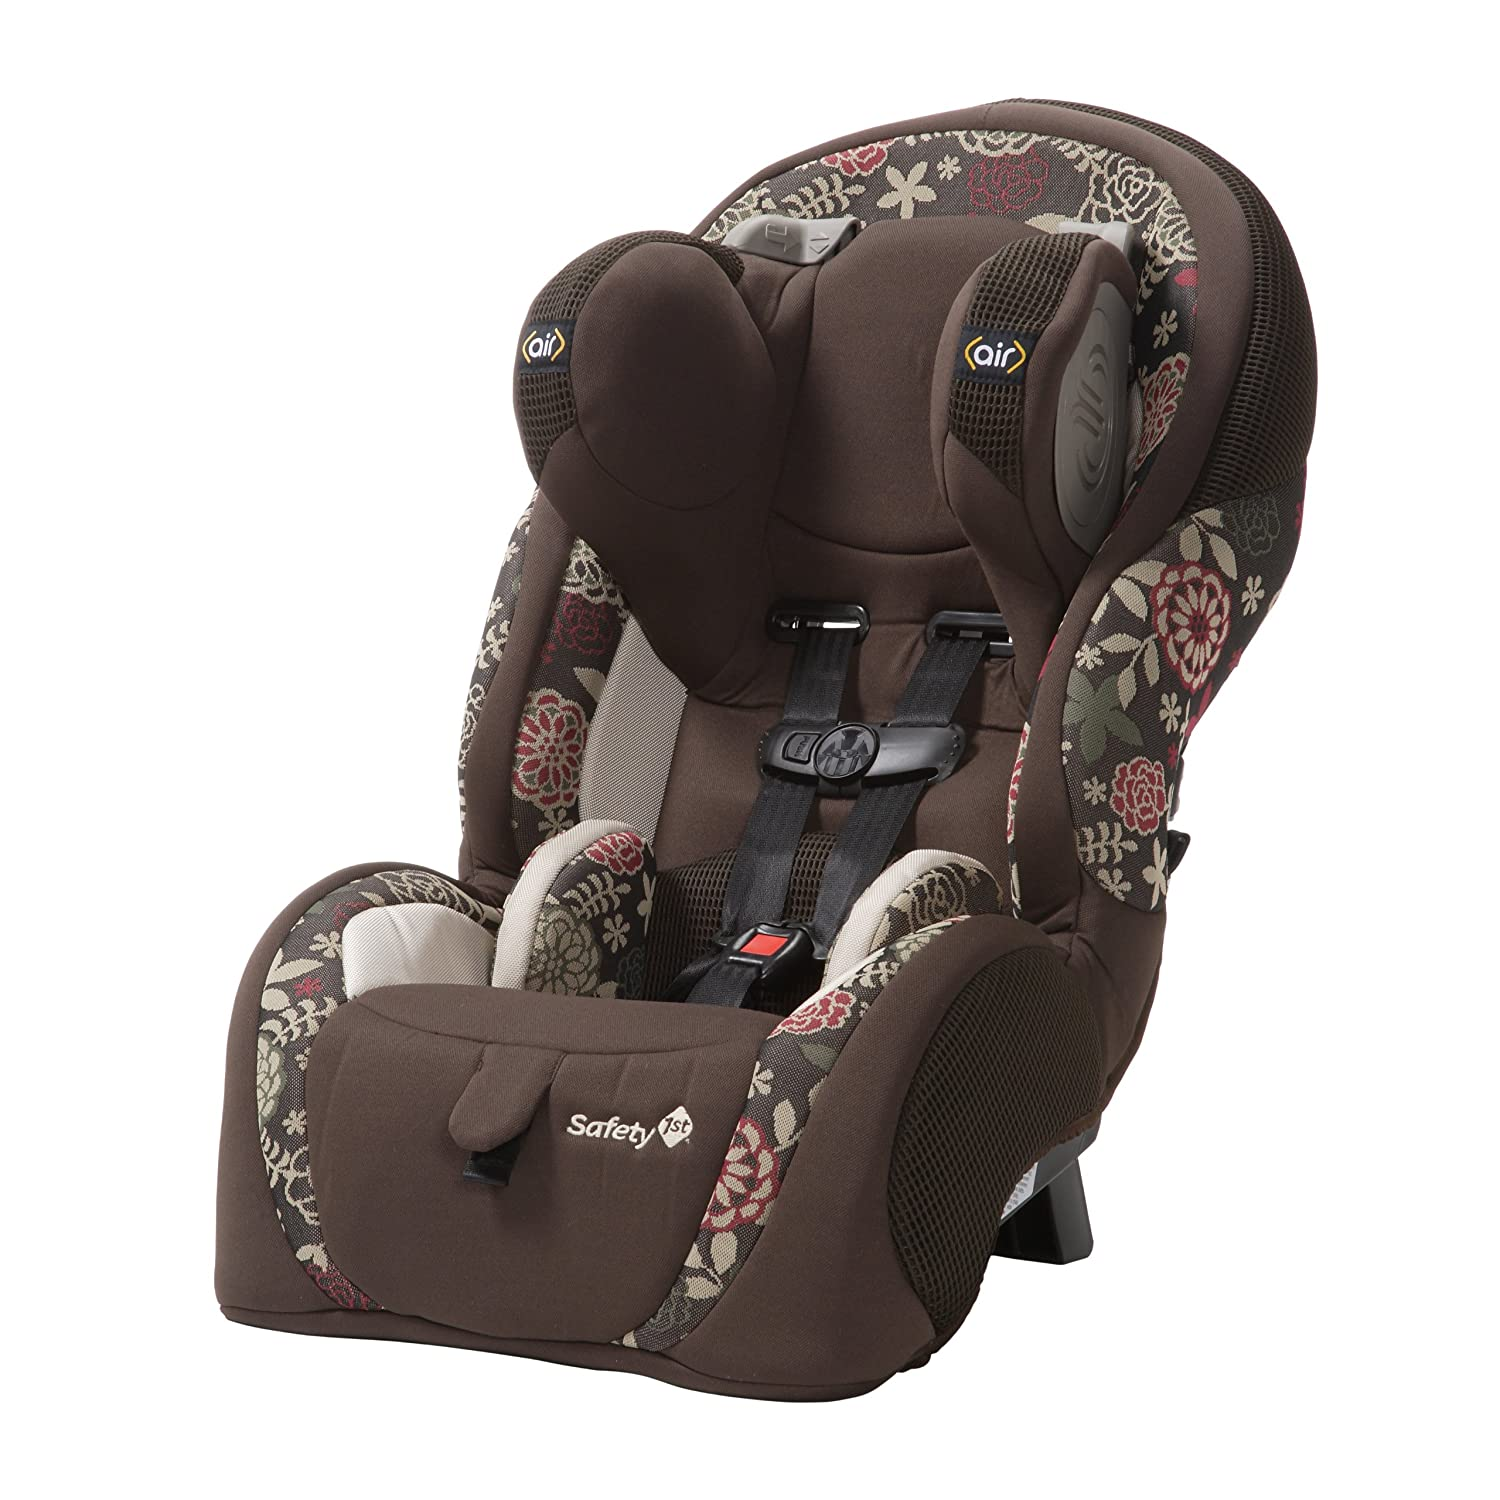 Safety 1st Complete Air 65 Convertible Car Seat Helios Dorel Juvenile Group